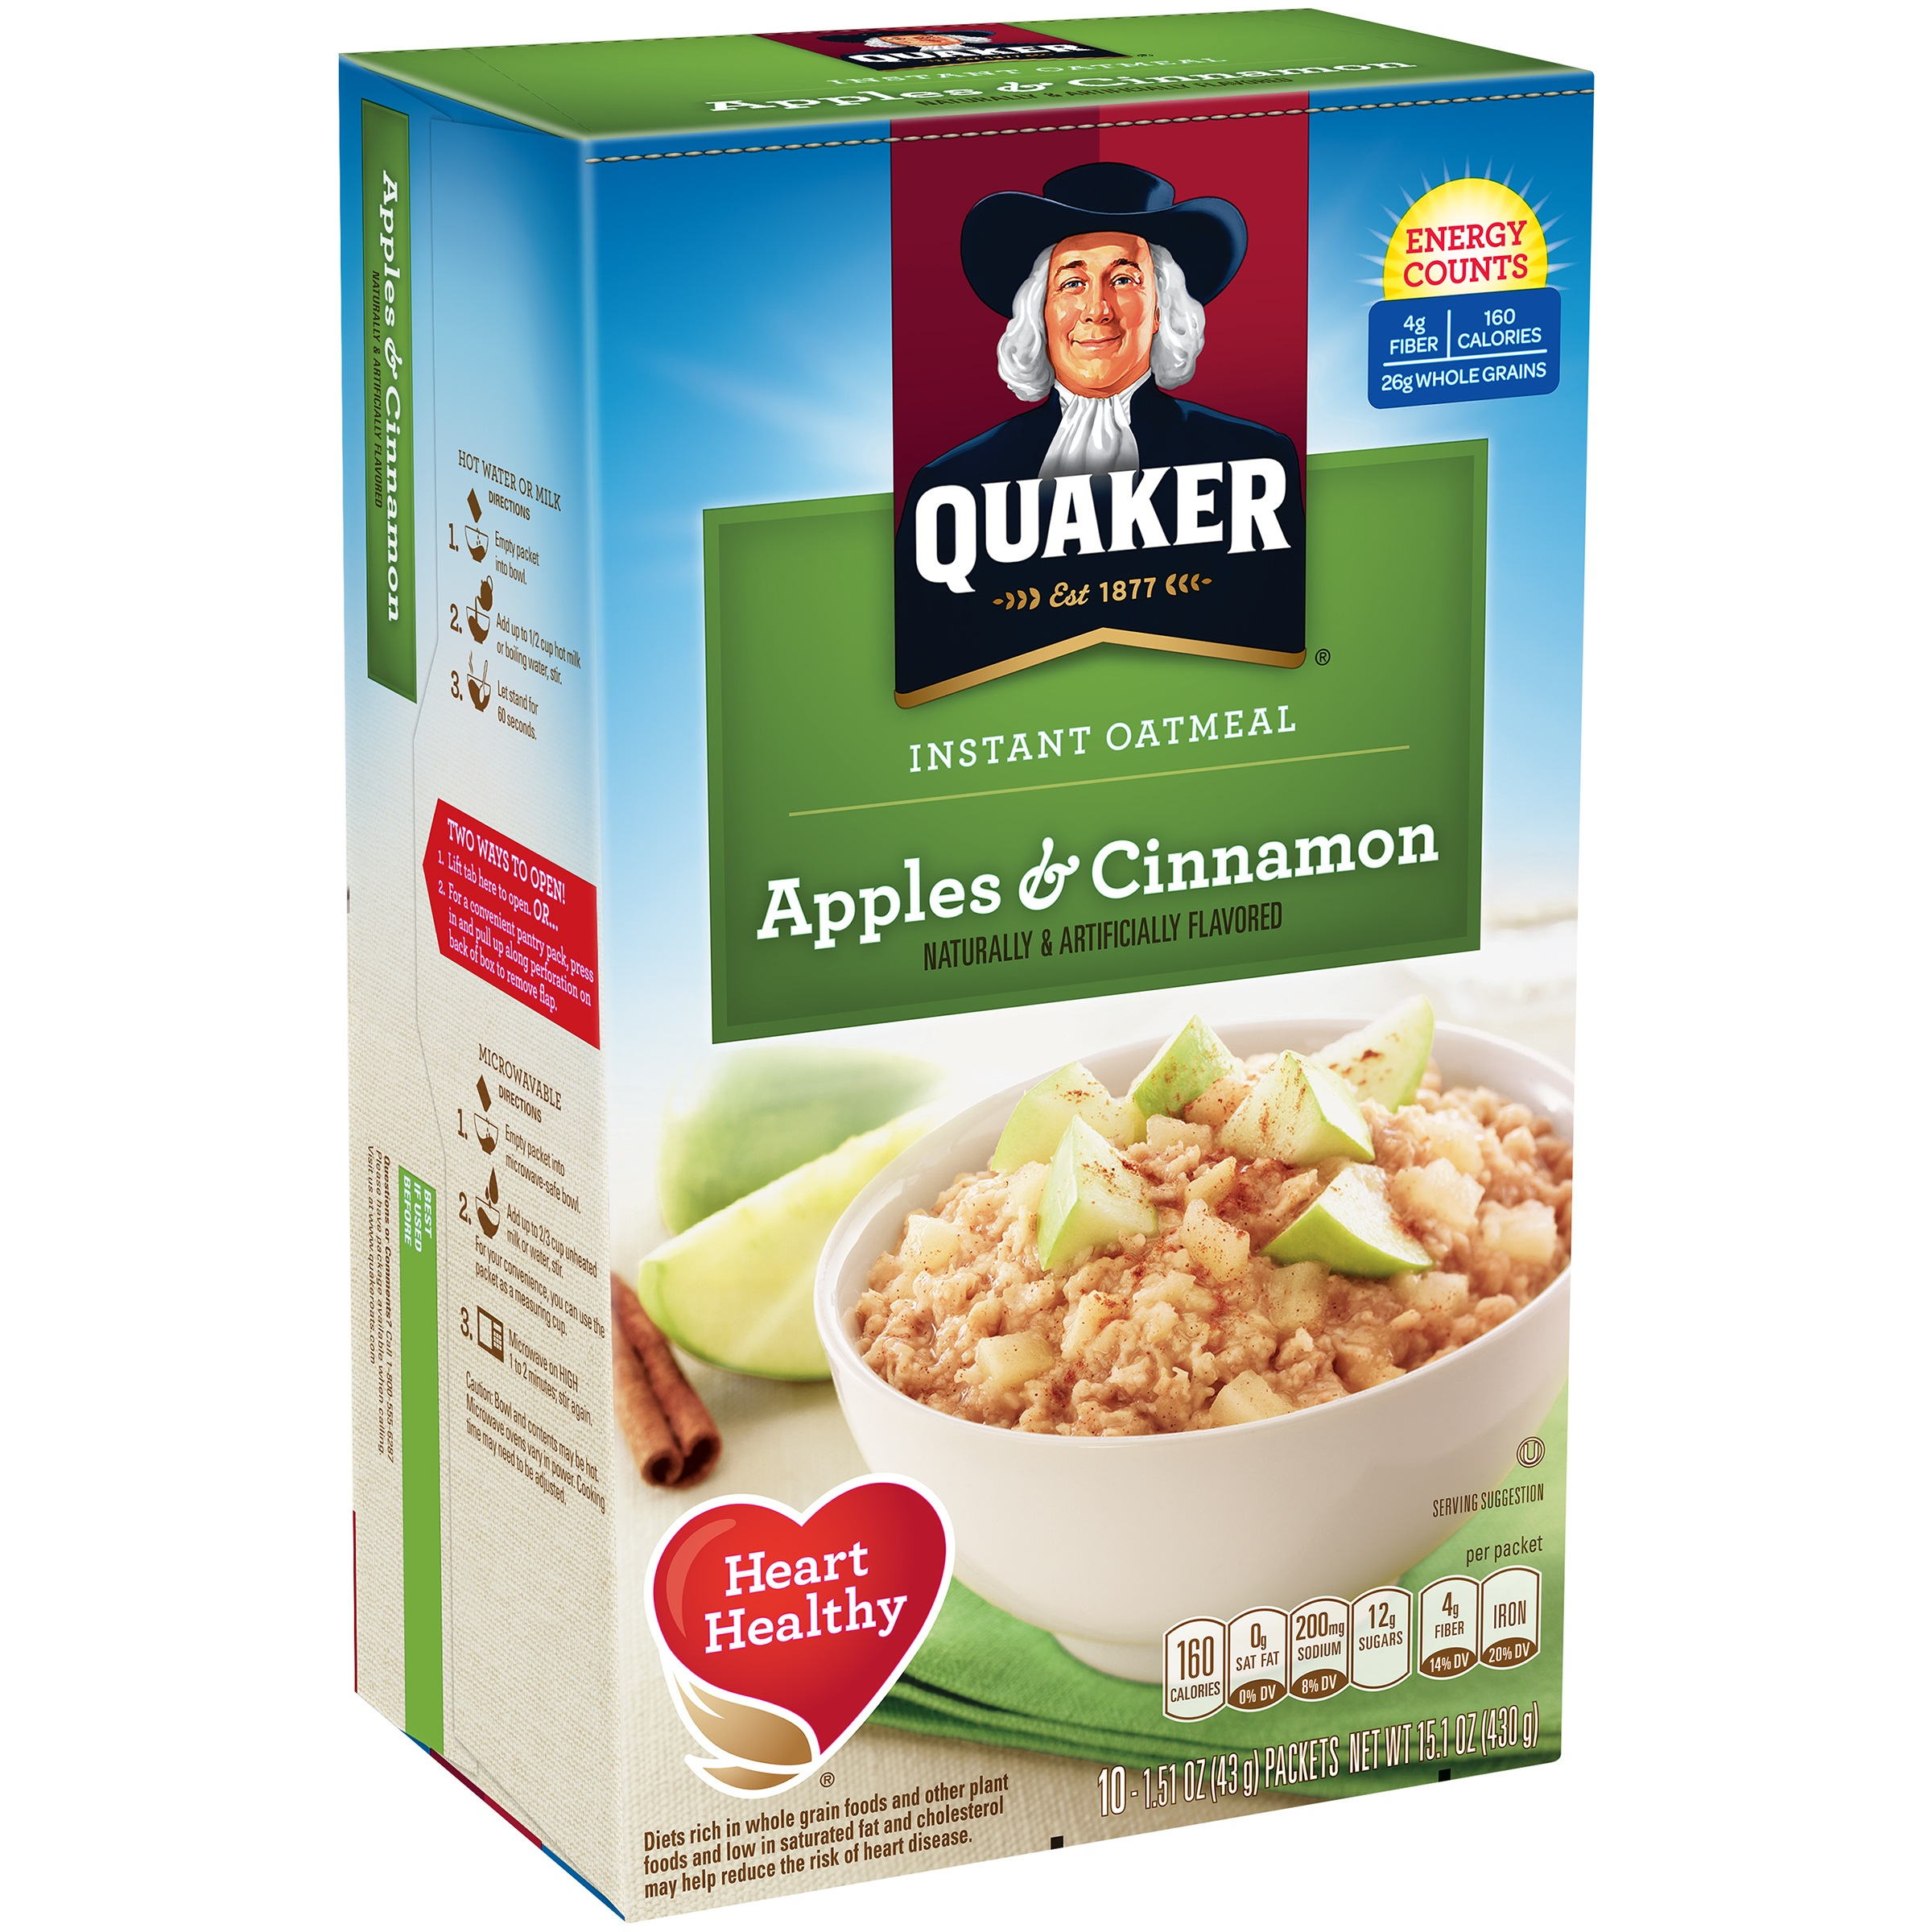 Quaker Instant Oatmeal, Apples & Cinnamon, 10 Packets